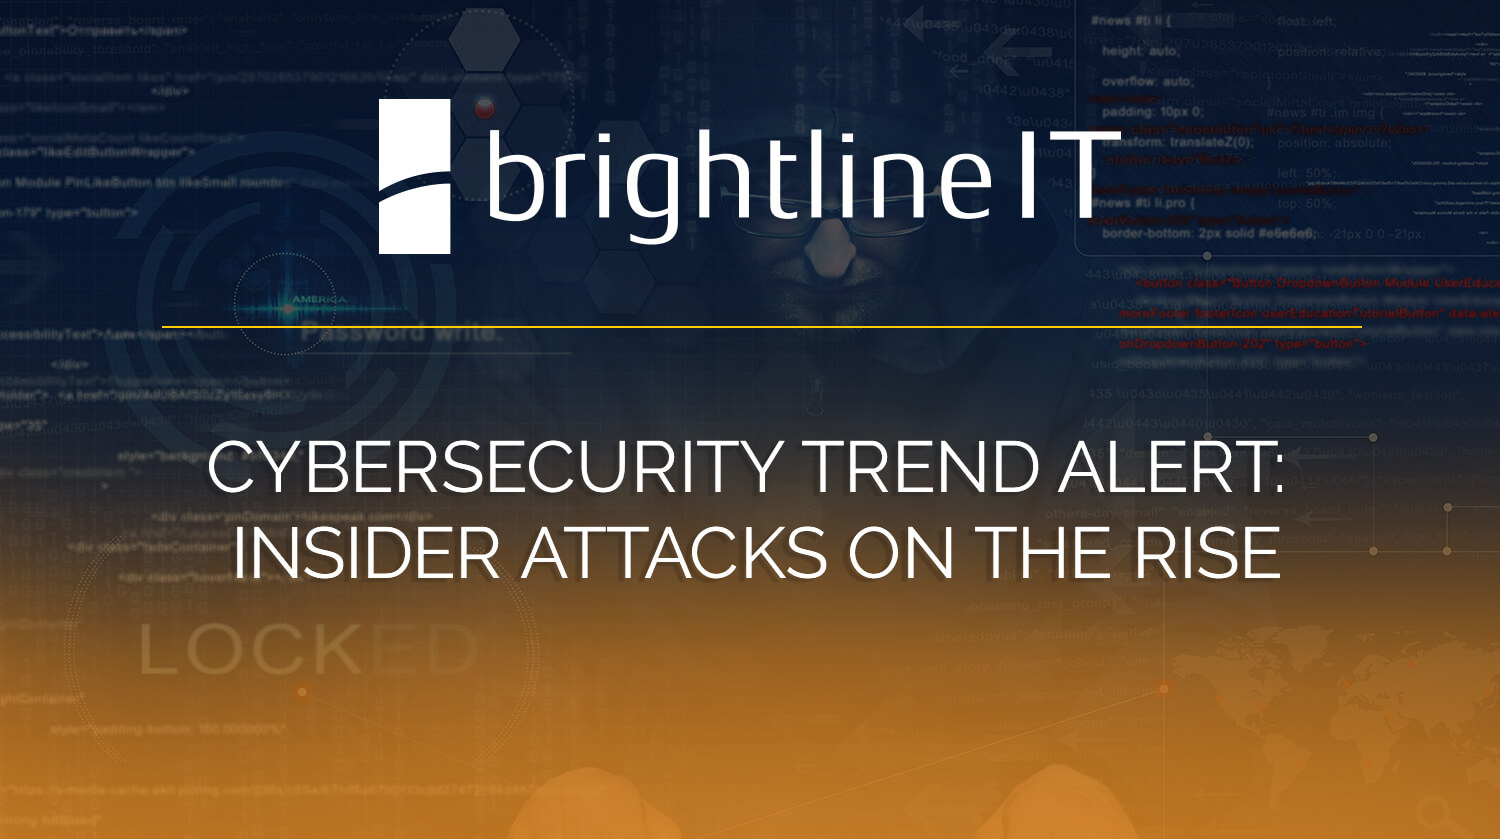 cybersecurity trend alert insider attacks on the rise